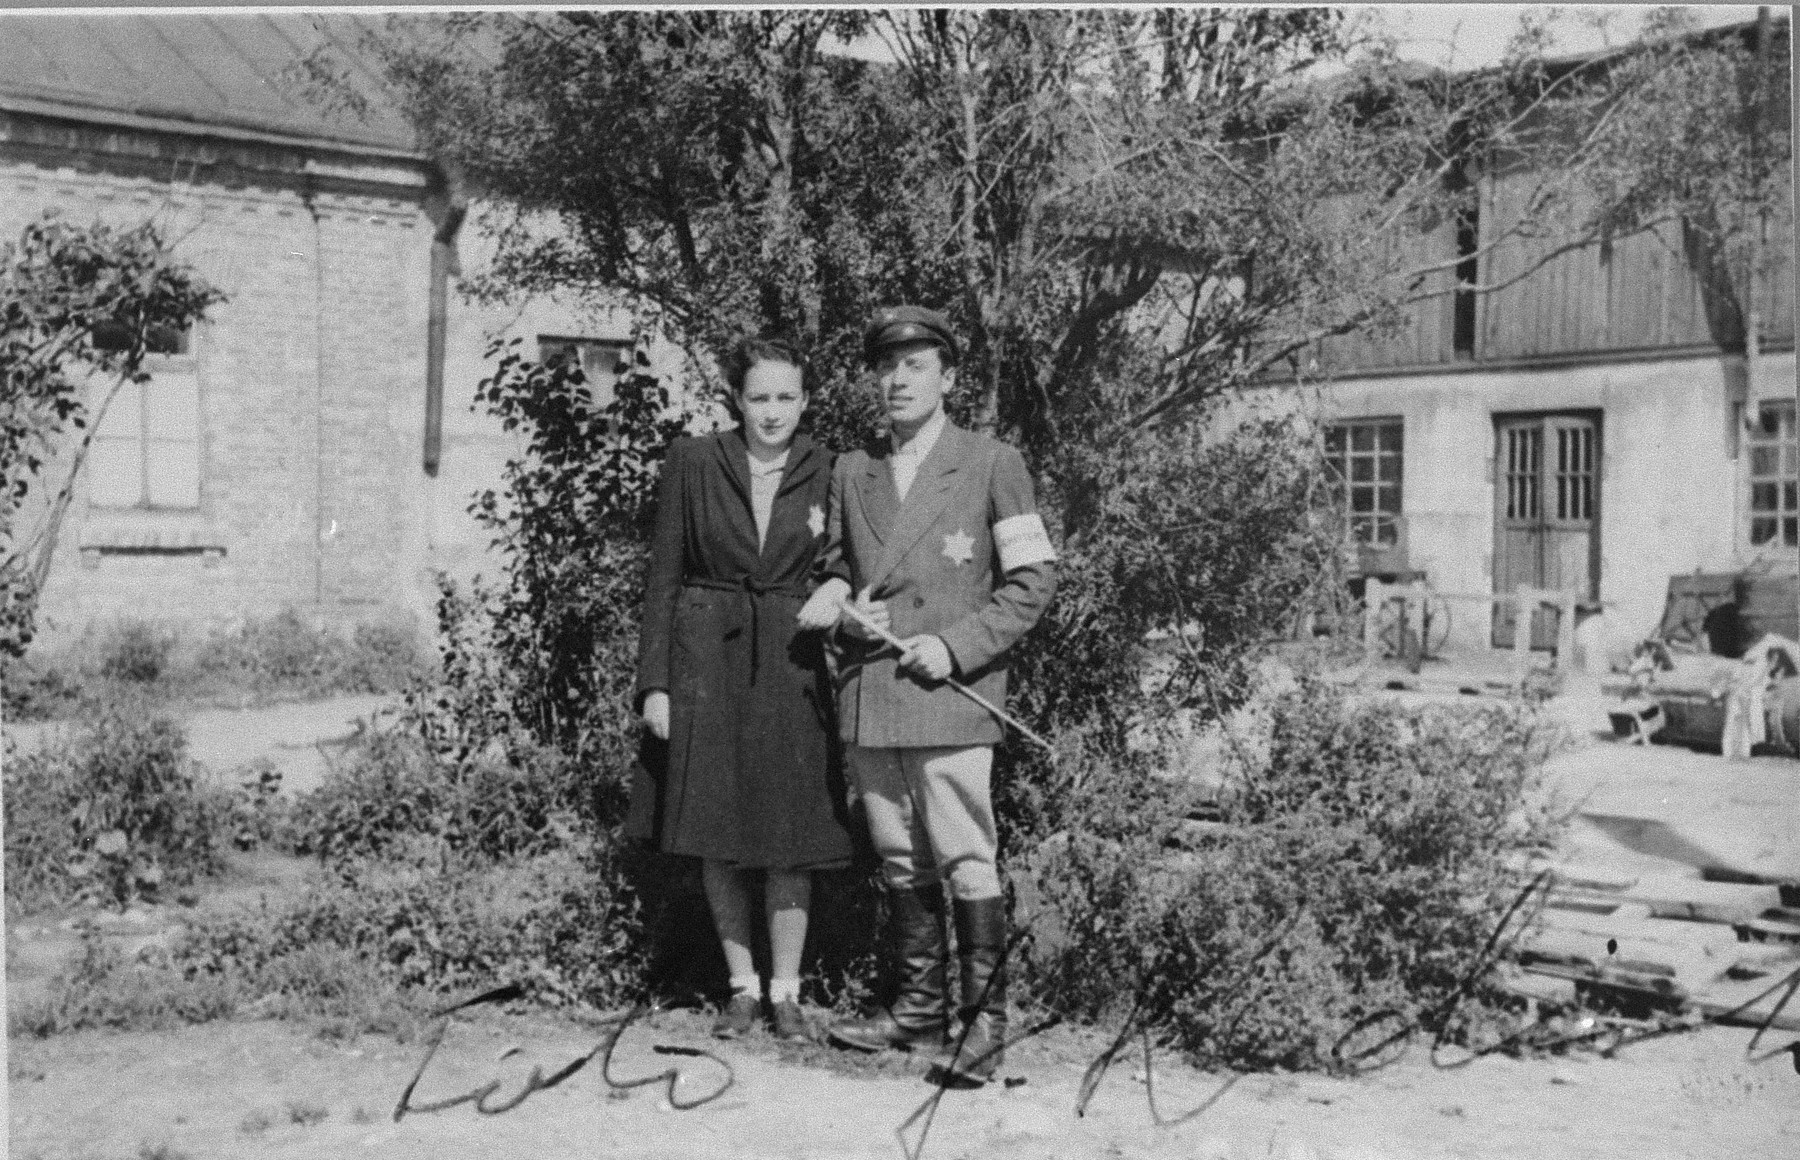 A Jewish policeman poses with his wife outside a home in the Kovno ghetto.  Pictured are Itzhak Dembin and his wife Rita Benyaminowicz-Dembin.  He was killed in the Ninth Fort, and she died in a burning bunker during the liquidation of the Kovno ghetto.